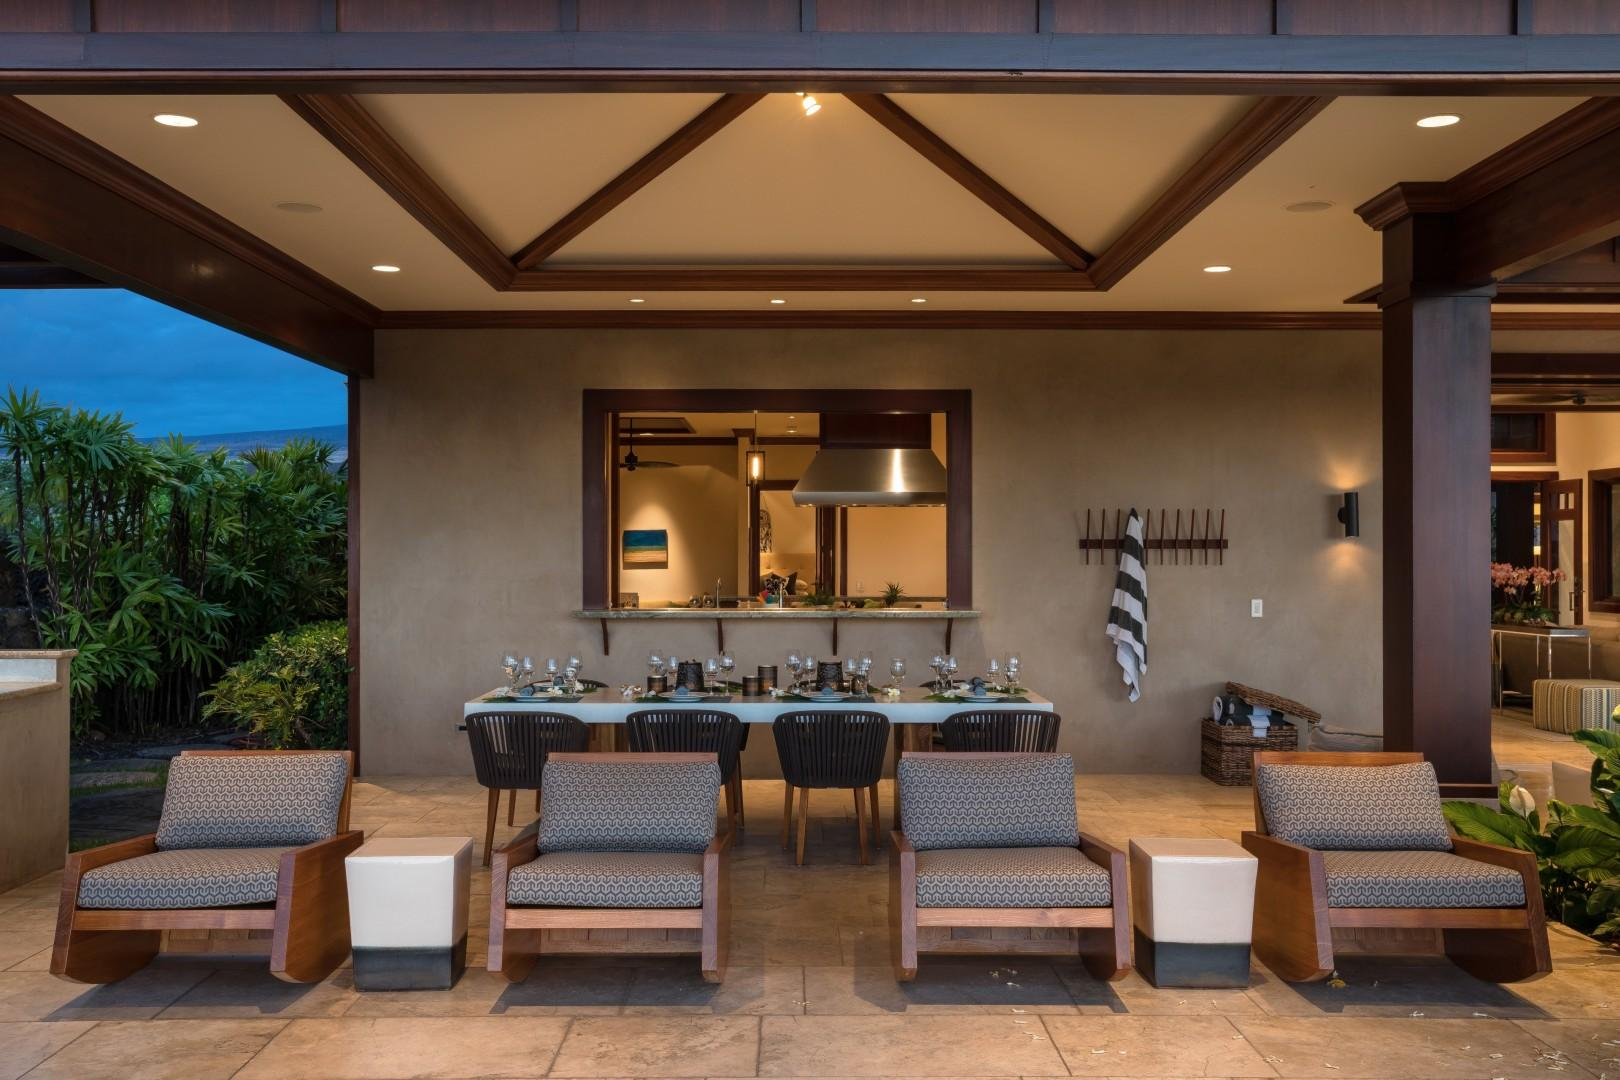 View of lanai rockers, outdoor dining area, and window to kitchen.